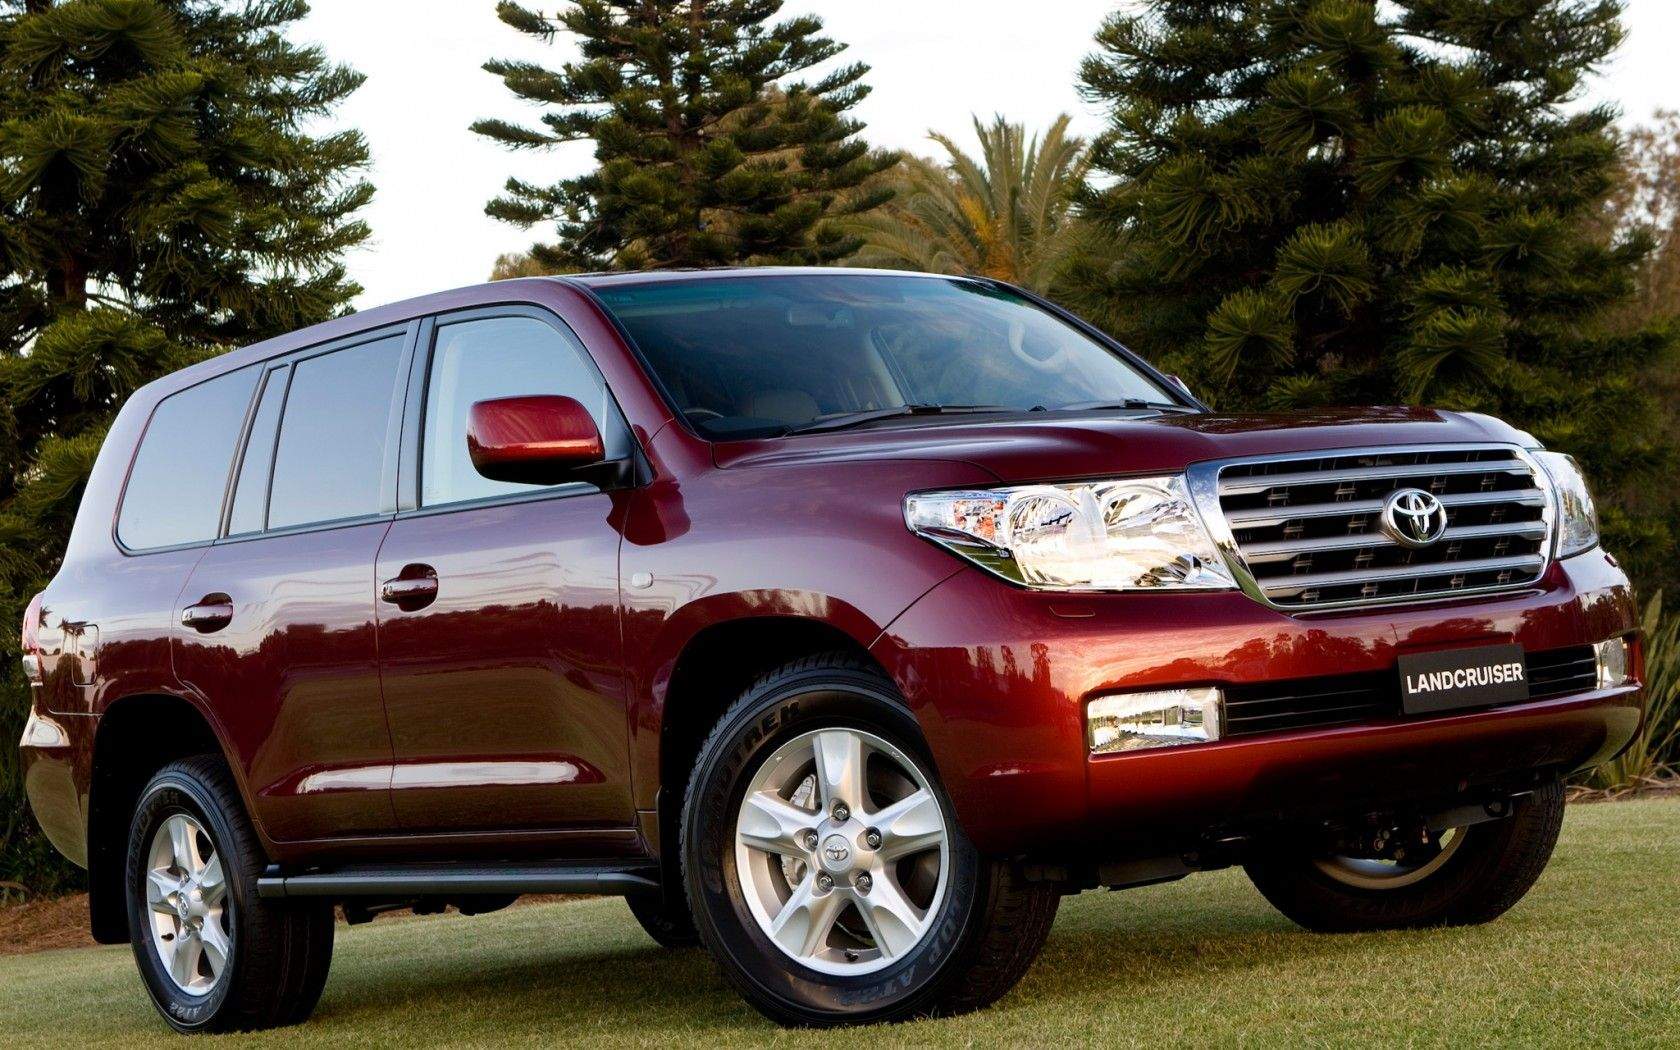 Toyota Land Cruiser 200 Cool Car Tuning Wallpapers Hd Red Aaaa